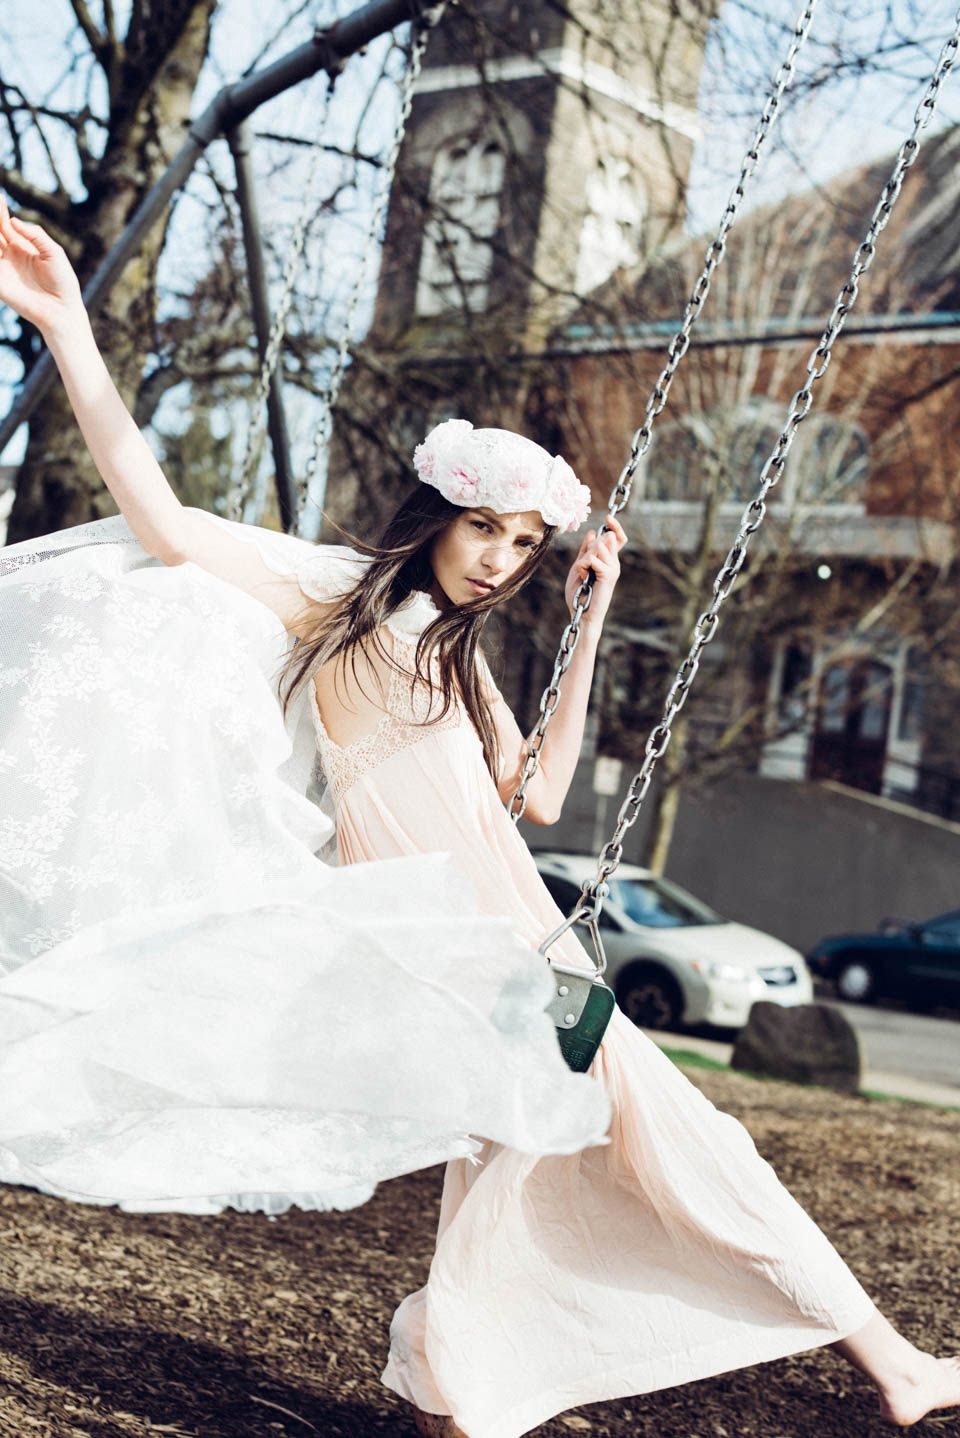 fashion editorial for jute shot in portland by fashion photographer erika astrid_51.jpg